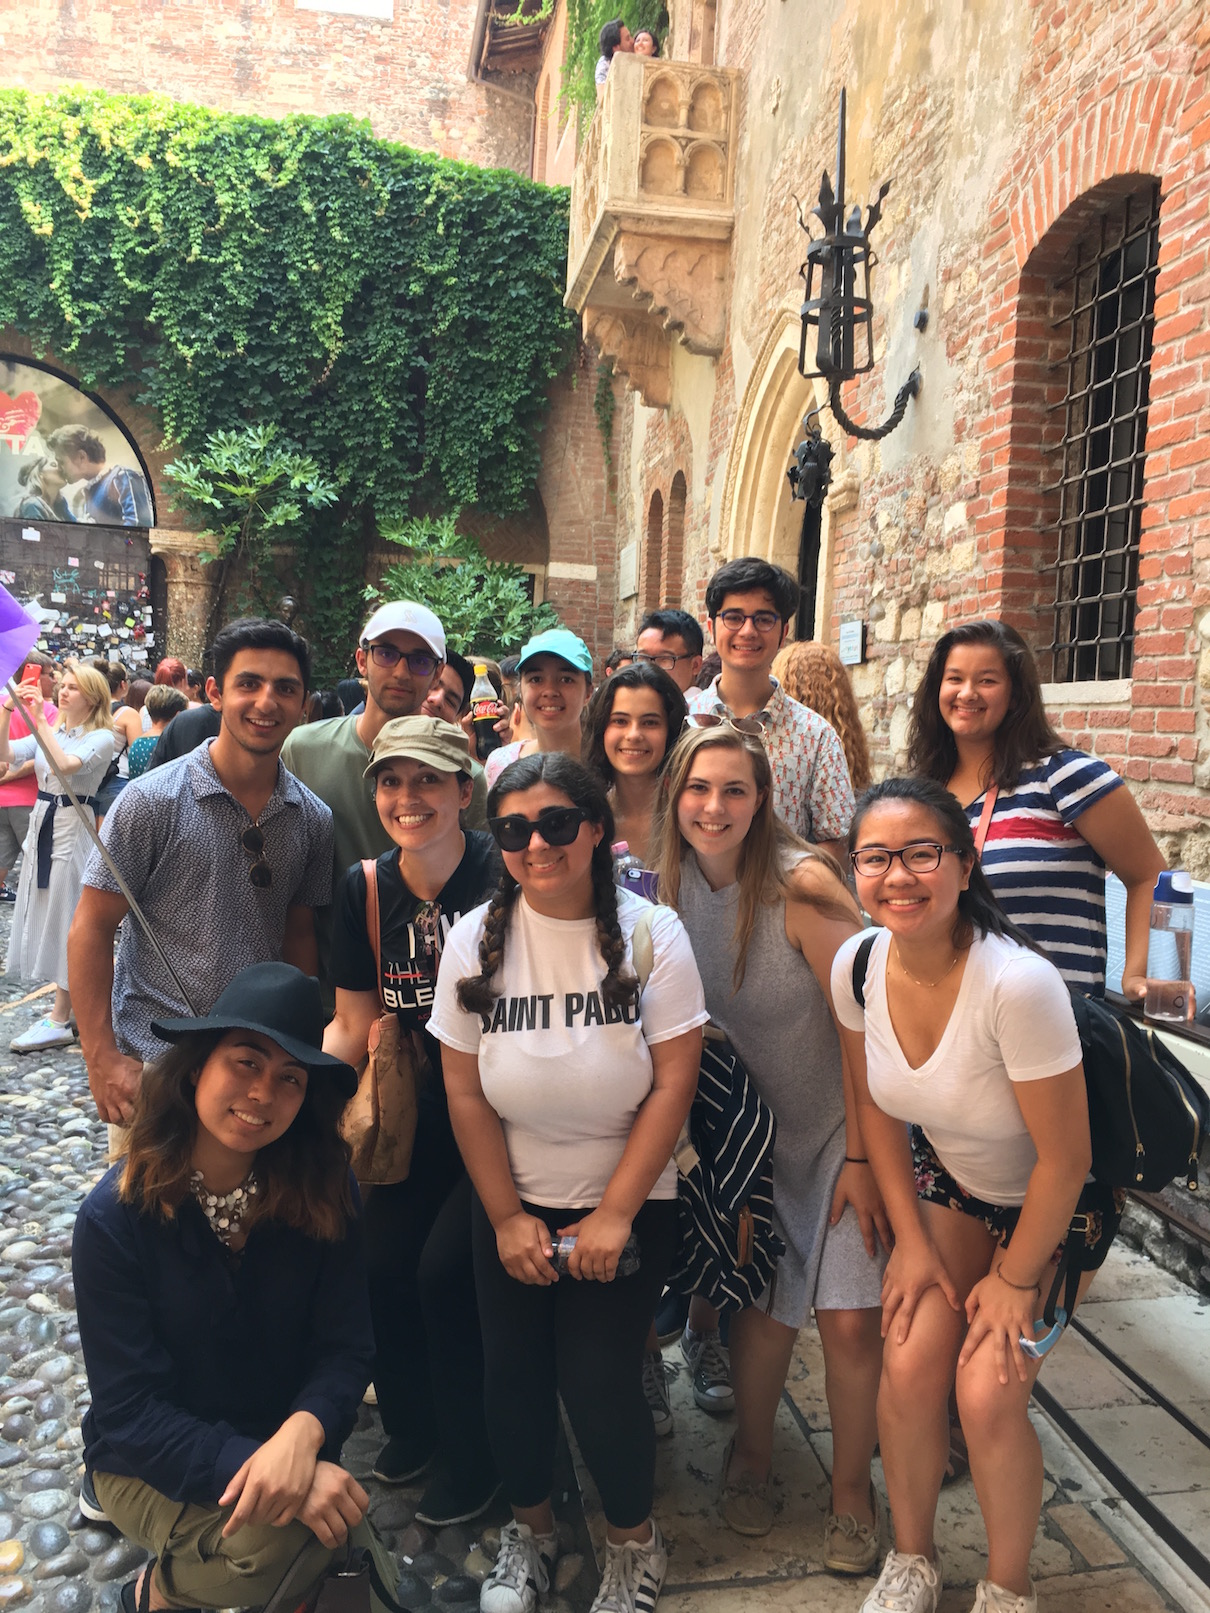 One of the groups outside Venice's Jewish ghetto, one of the oldest in the world.